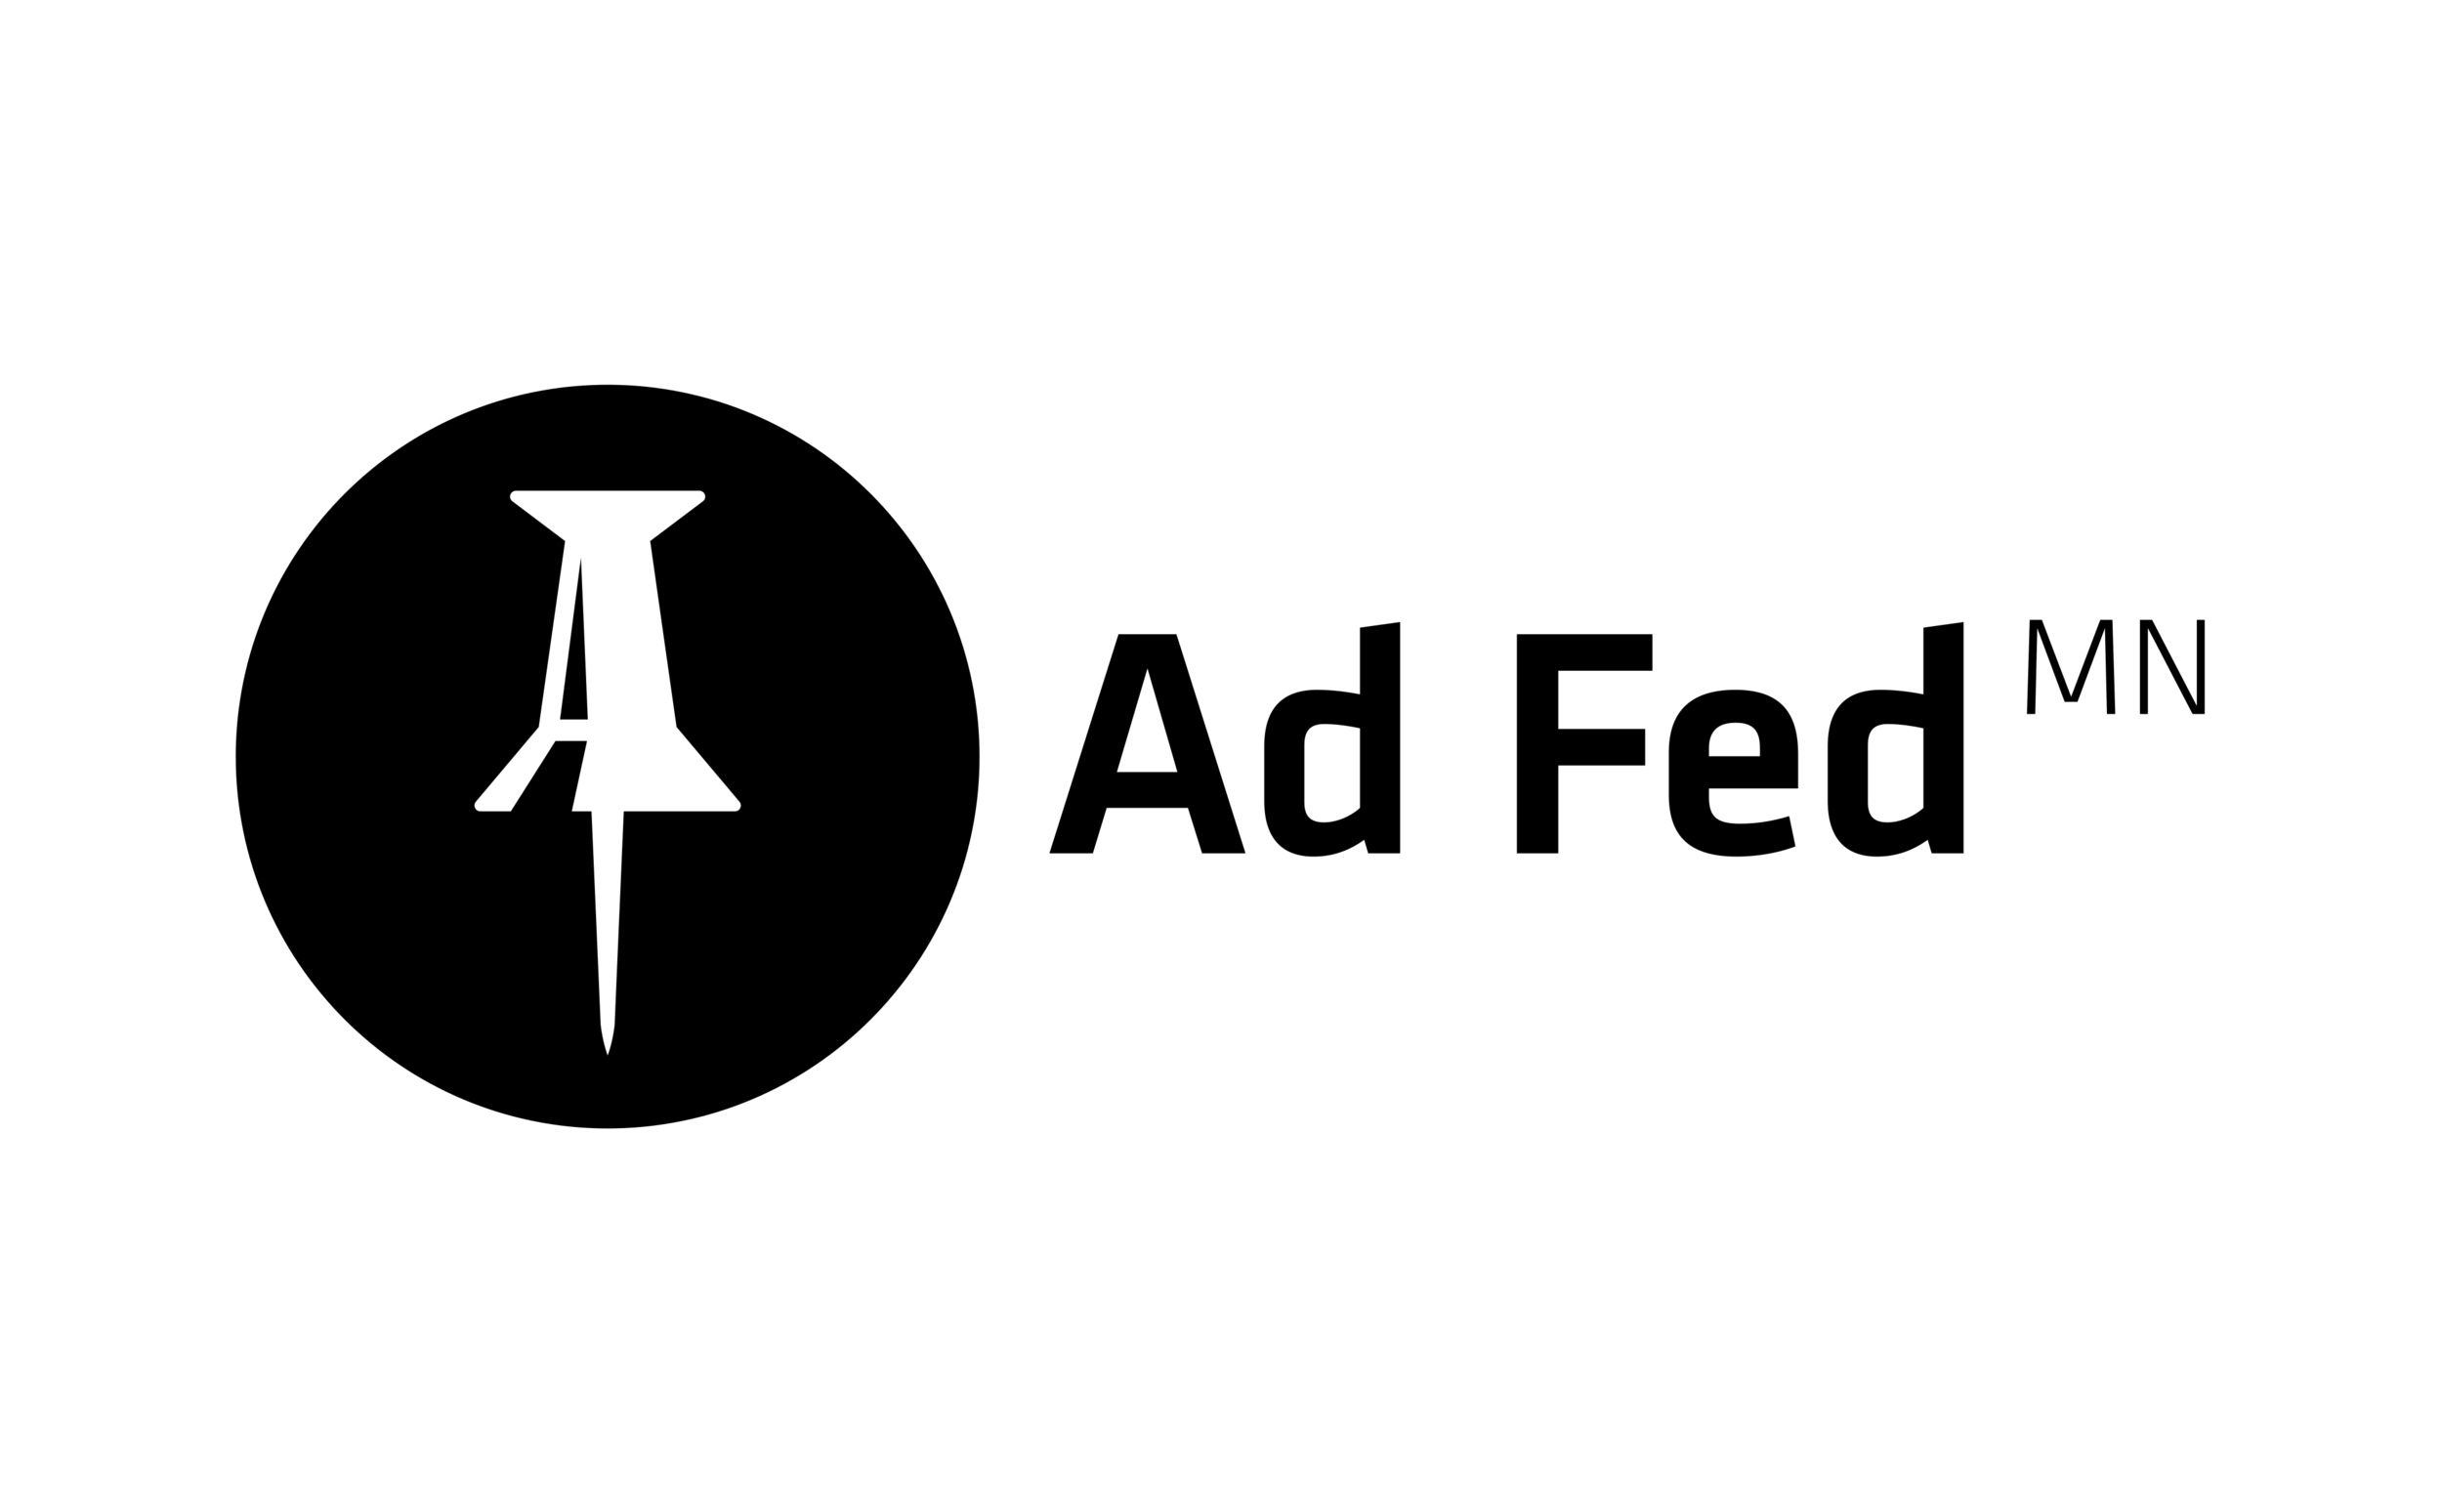 AdFed_Logo_Primary-Black.png